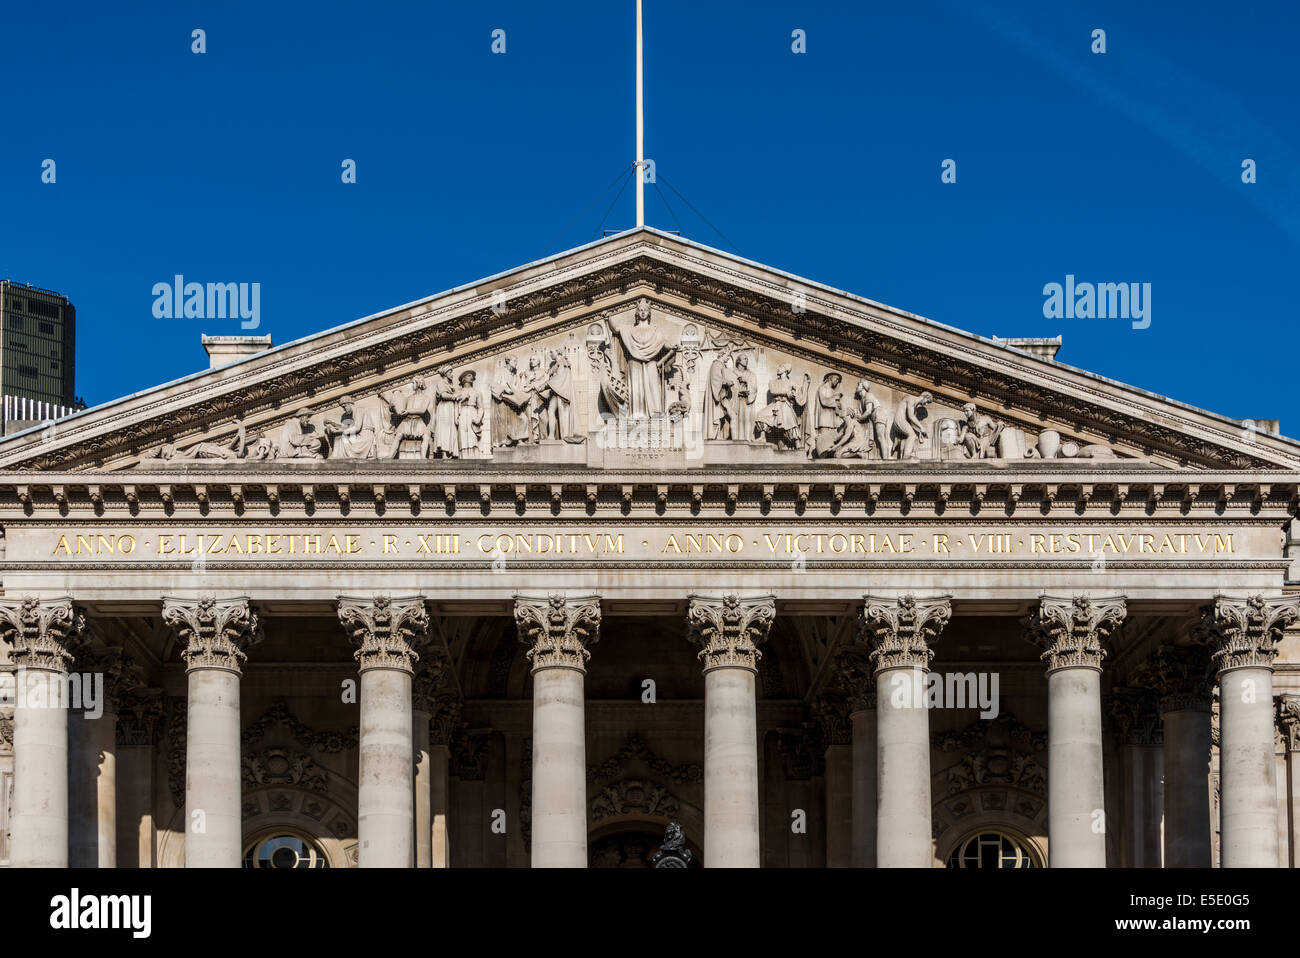 the pediment of the royal exchange in the city of london the front